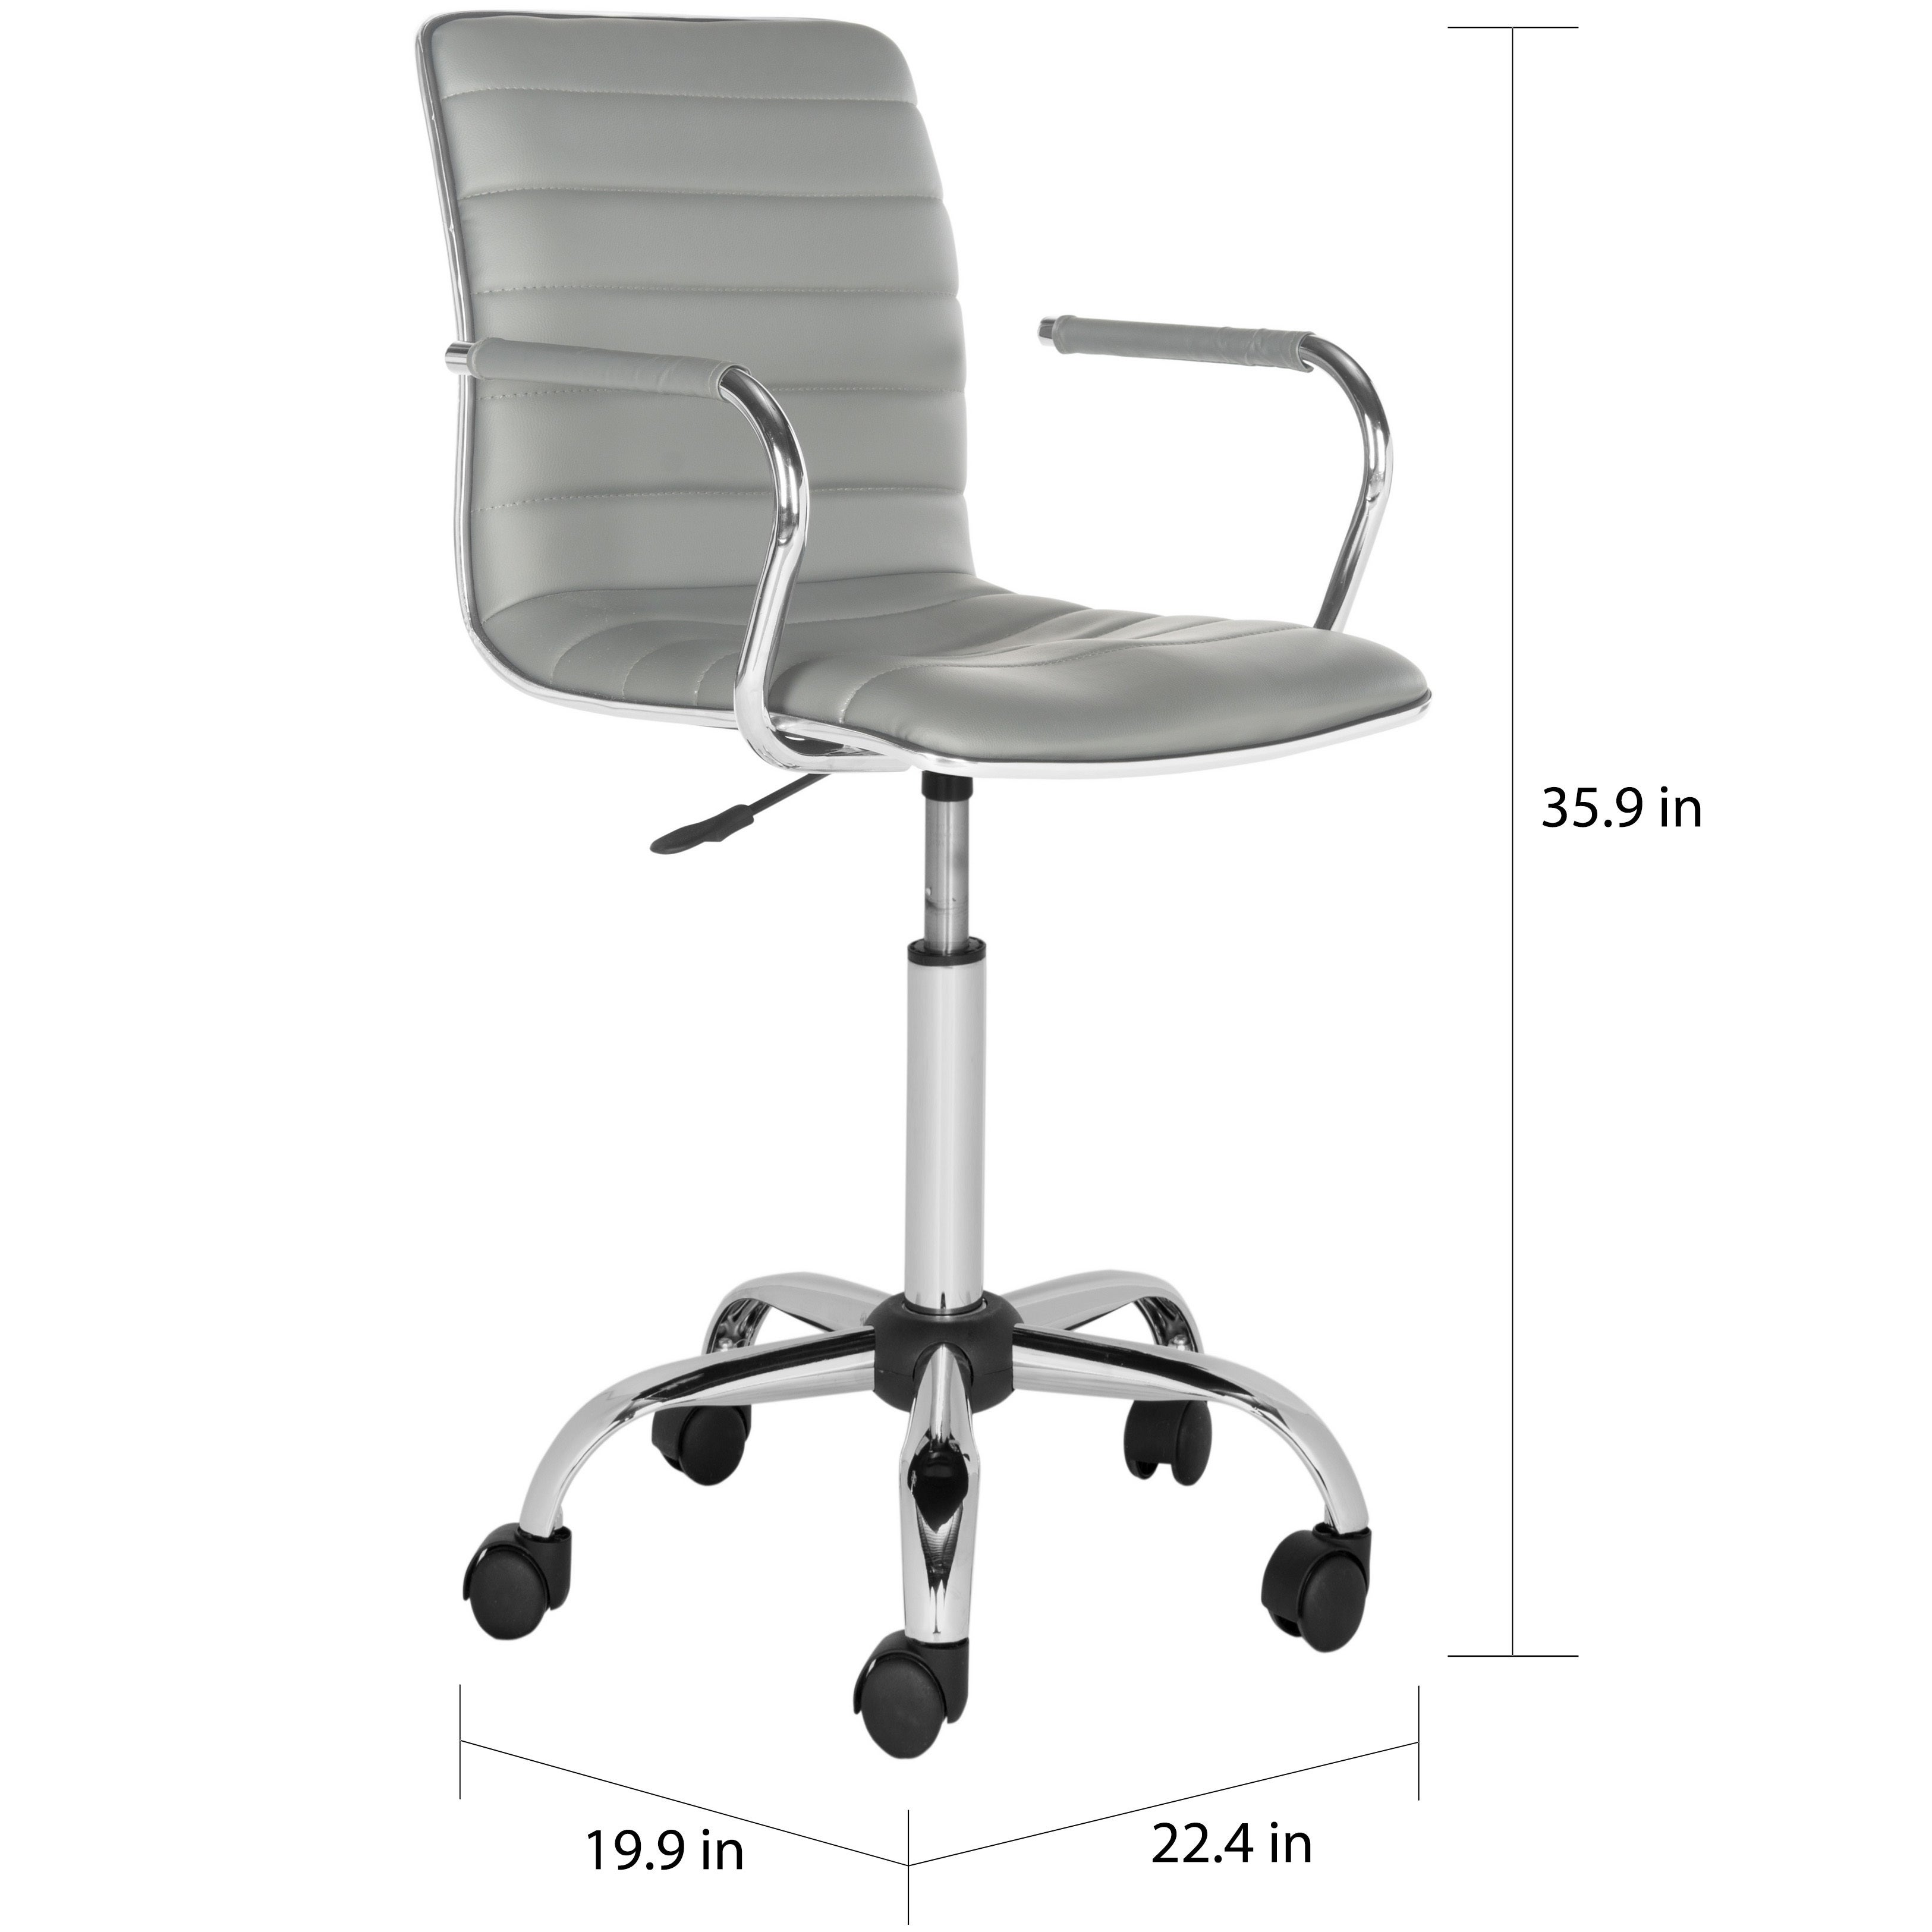 chair grey chase desk